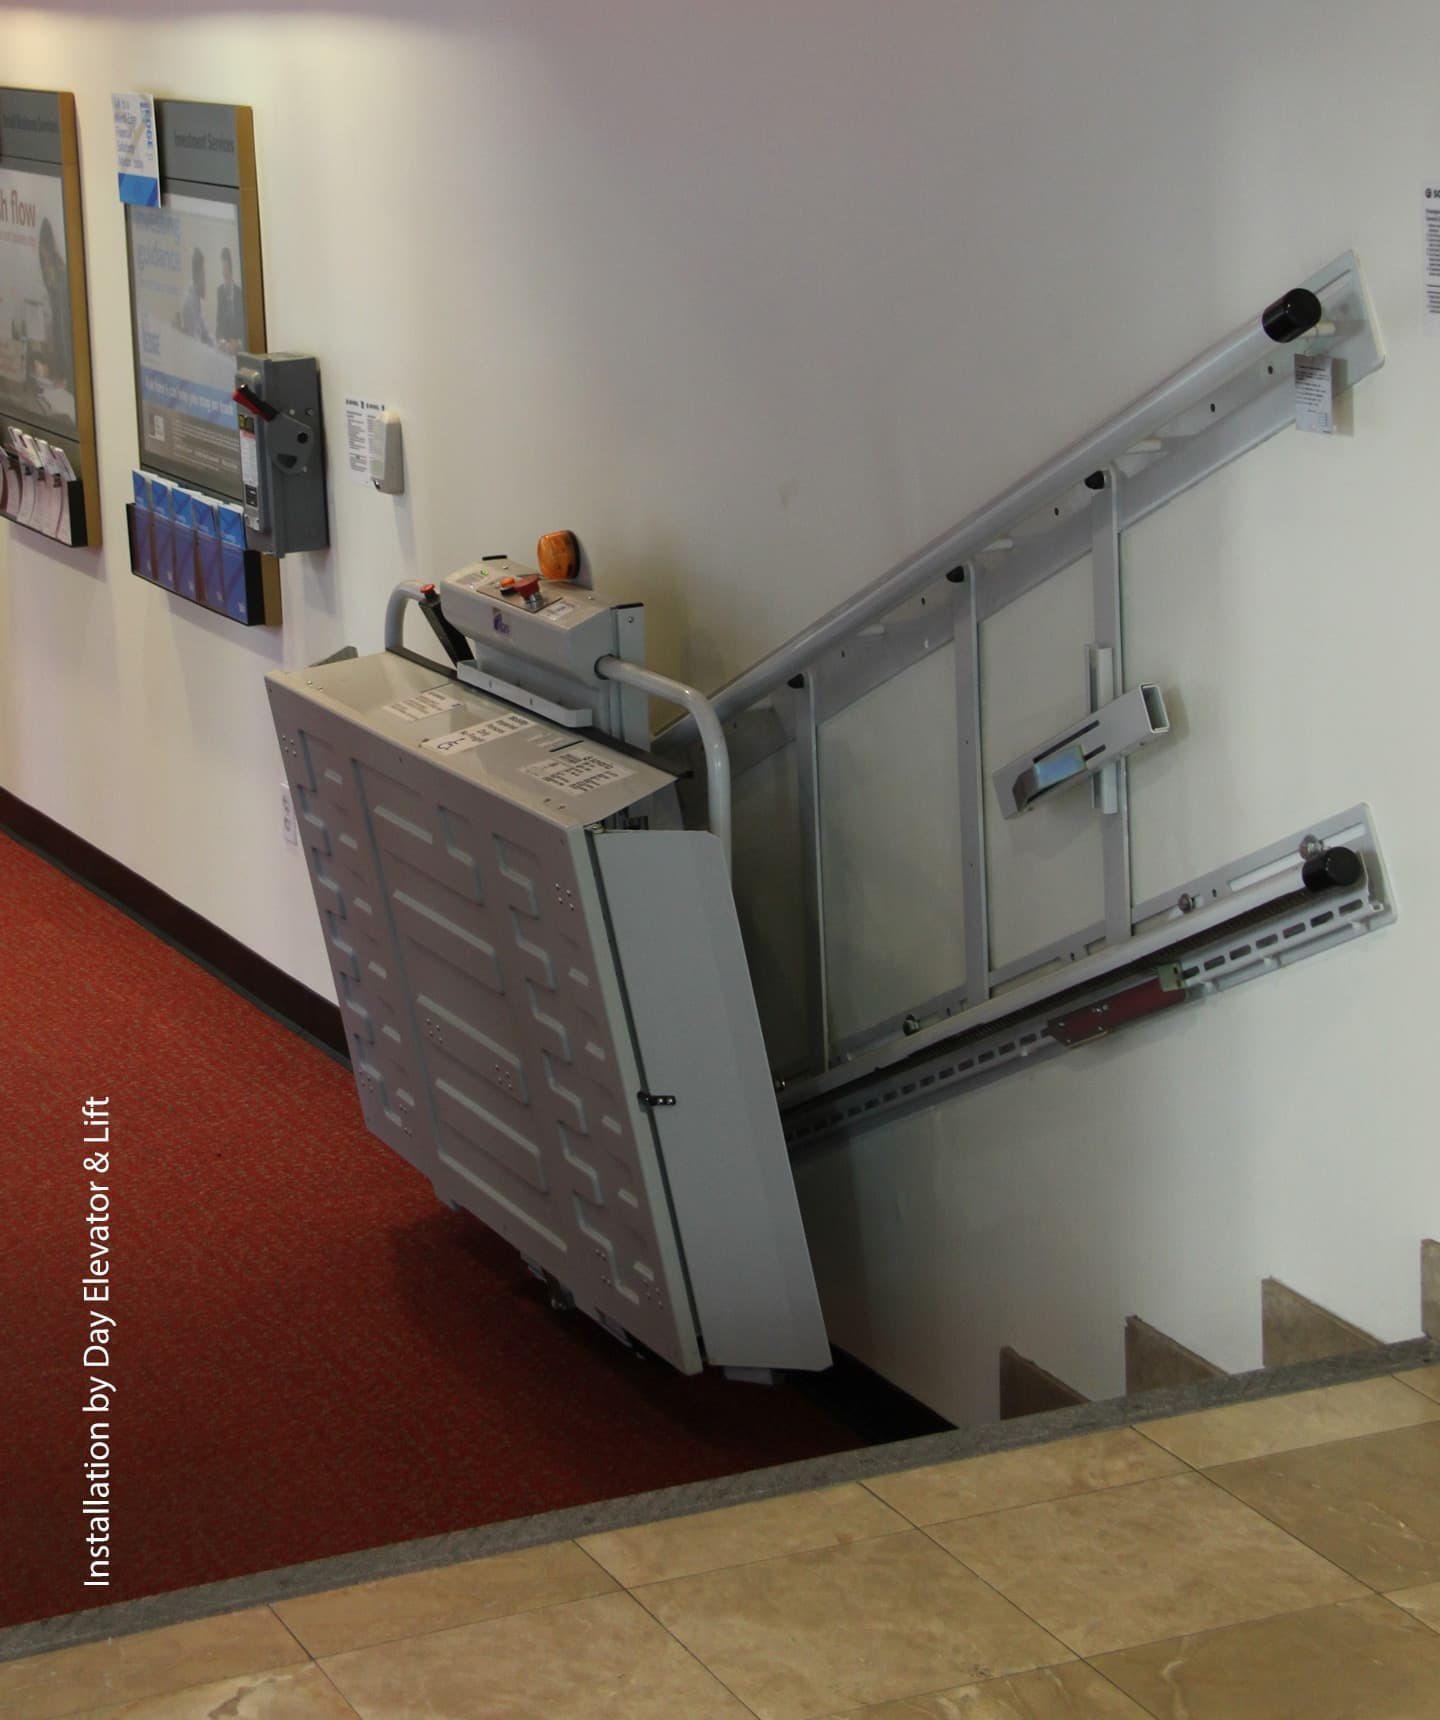 An incline platform that leads up the stairs inside a house